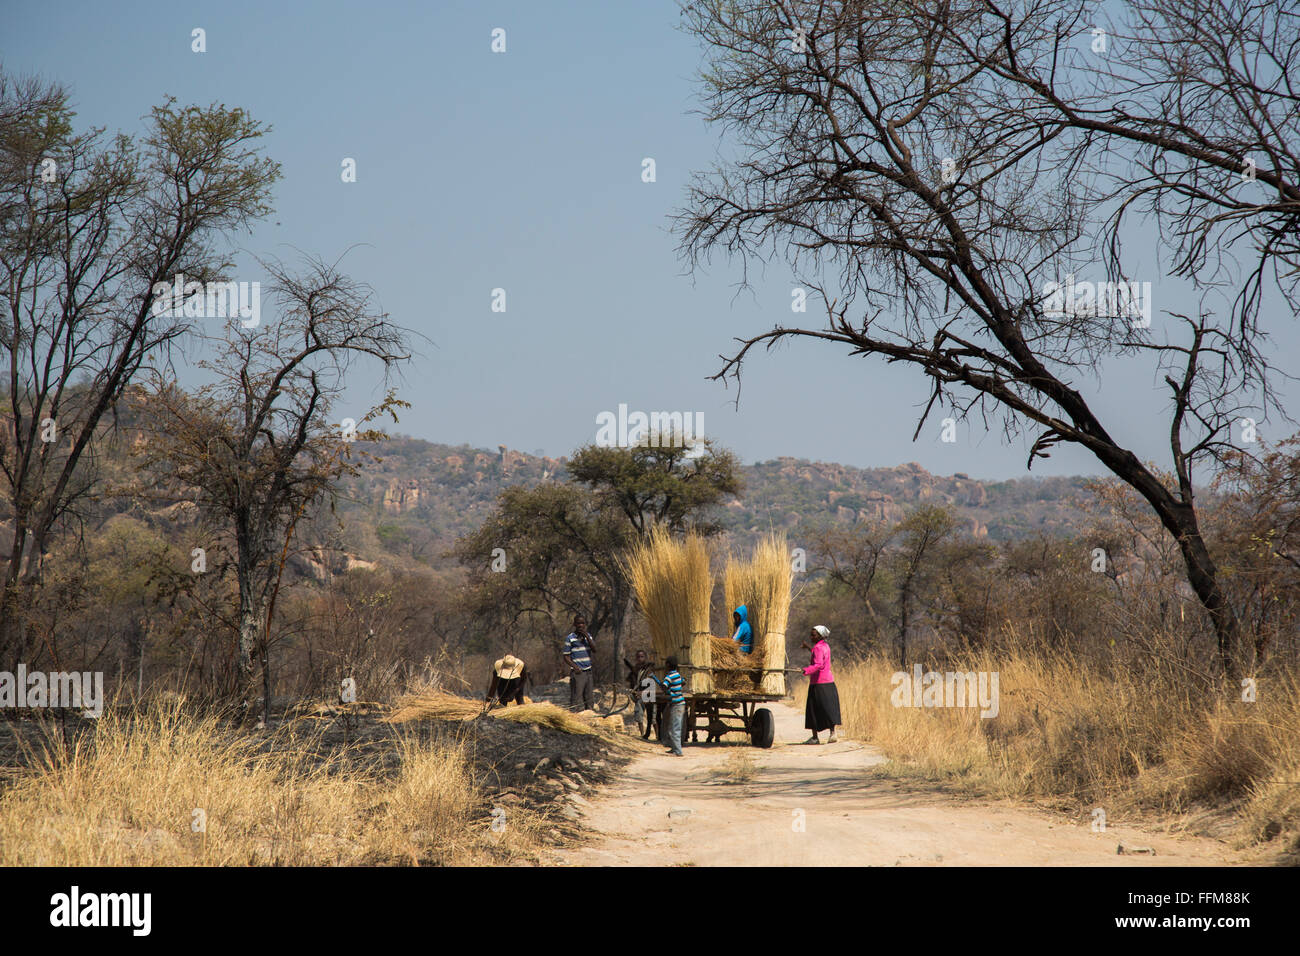 Locals collecting and cutting thatching grass within the Matops National Park - Stock Image